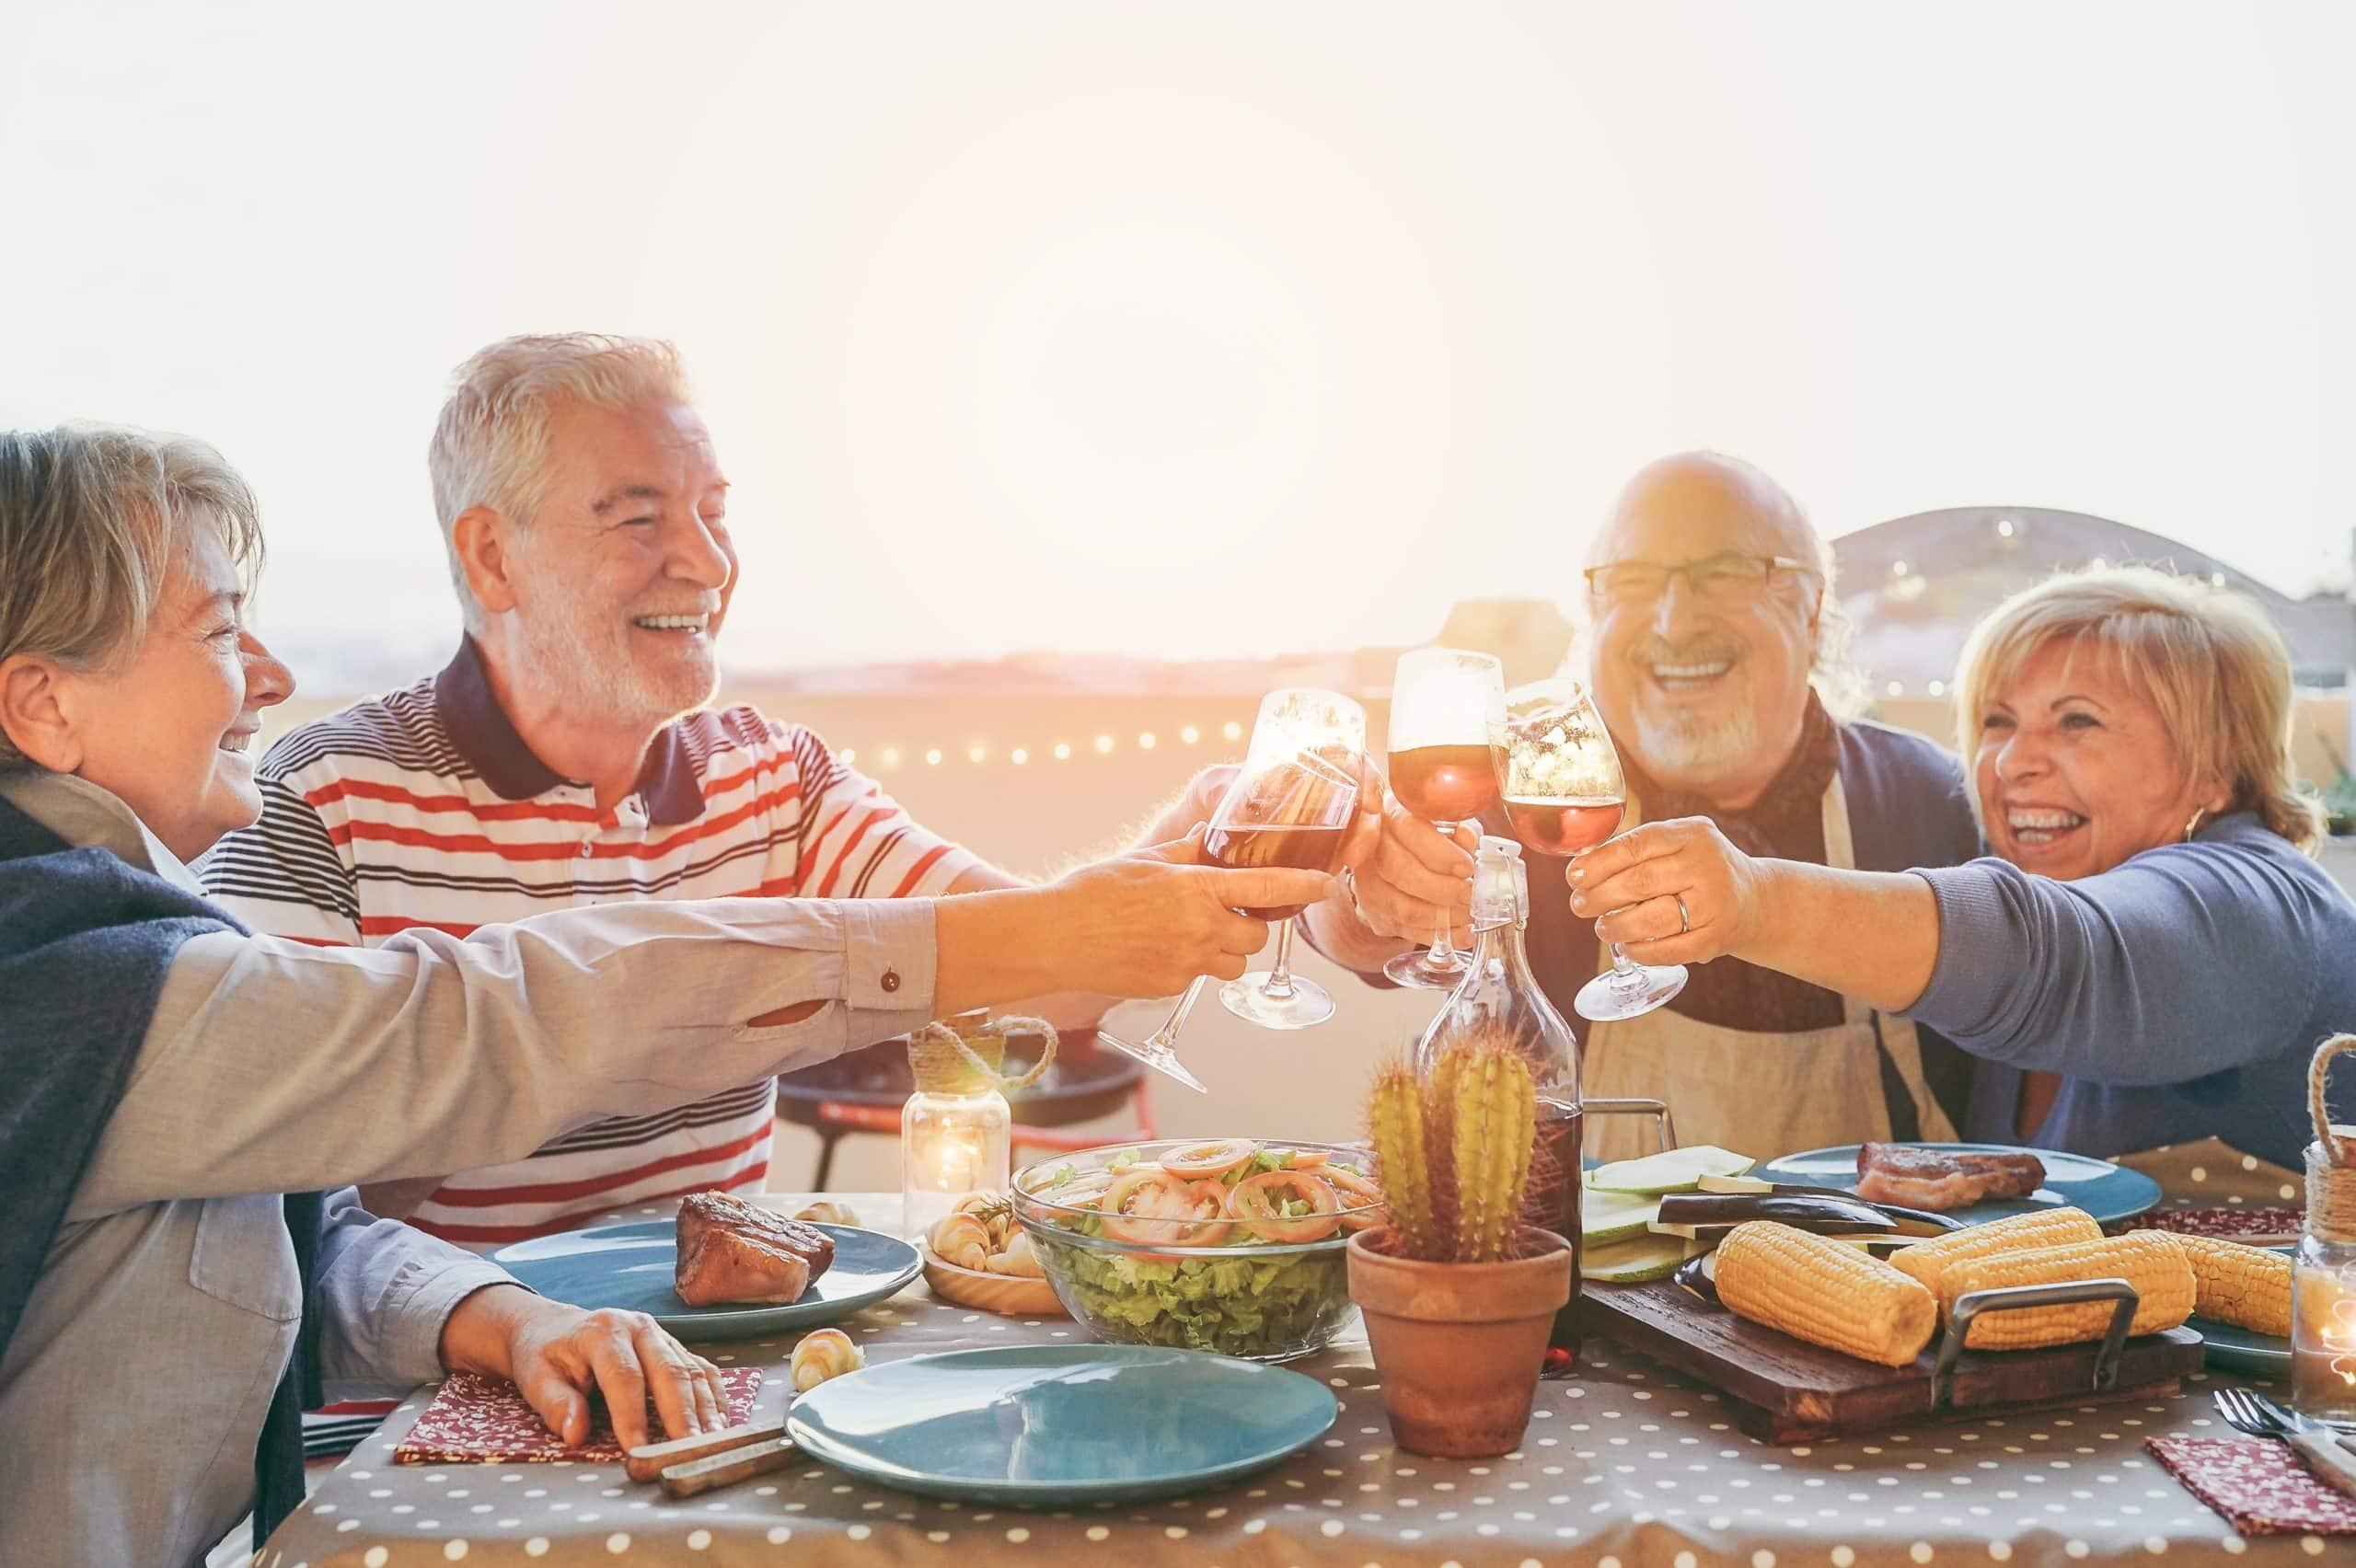 Happy senior friends having fun cheering with red wine at barbecue in terrace  outdoor - Mature people making dinner toasting glasses and laughing together - Friendship and elderly lifestyle concept